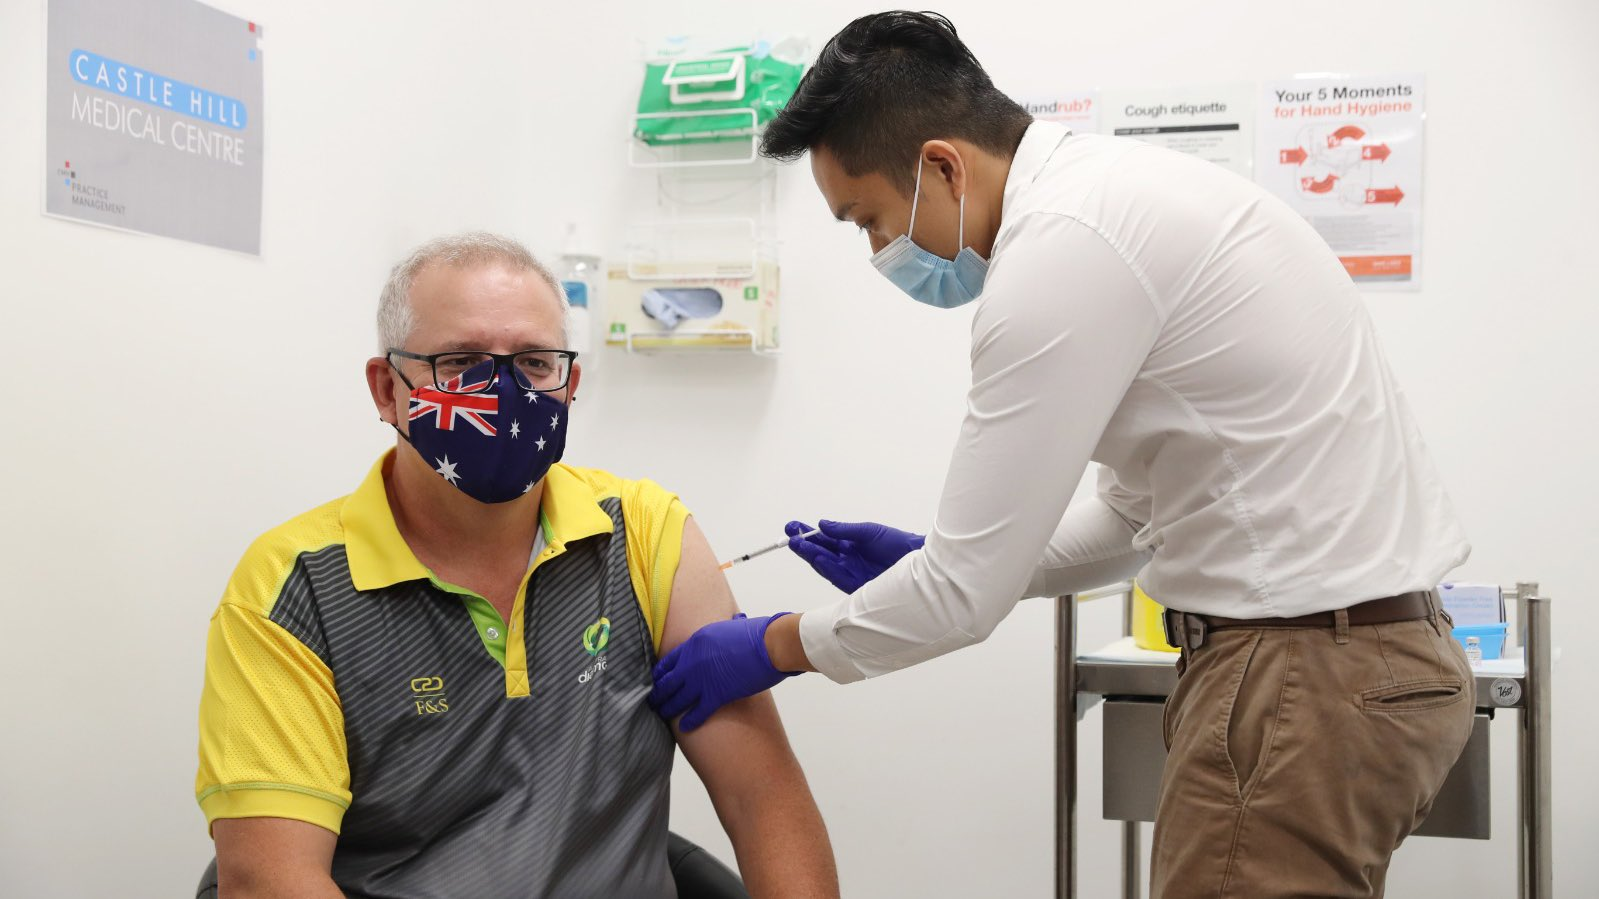 Prime Minister Scott Morrison receives his vaccine. Image courtesy Scott Morrison via Twitter.